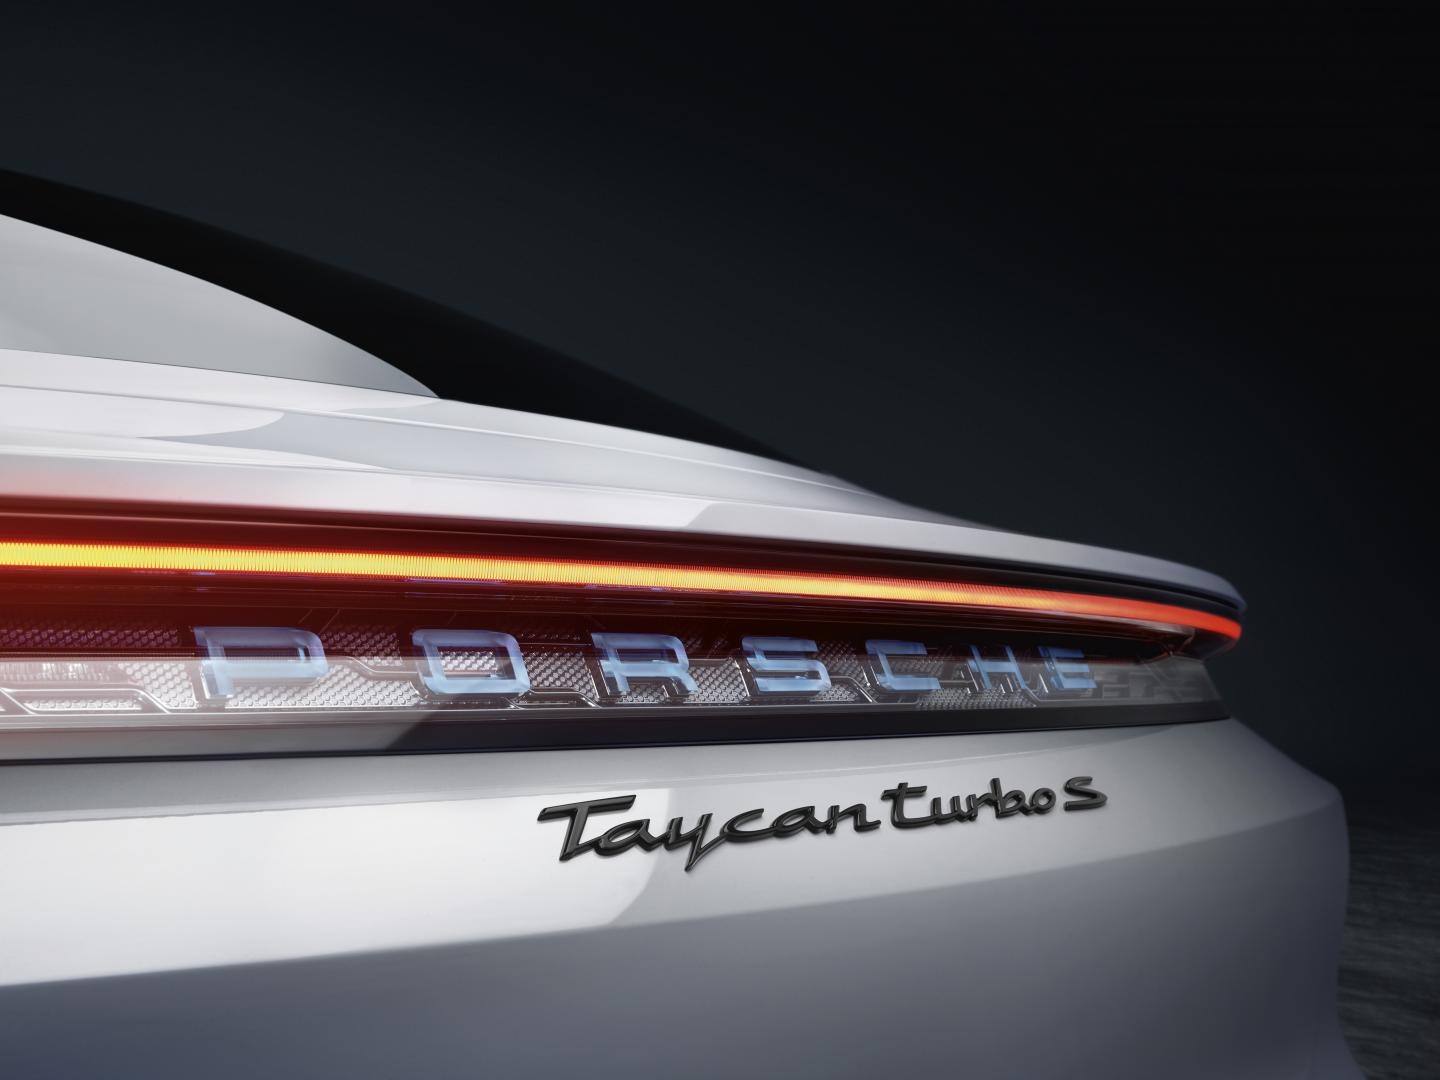 Porsche Taycan Turbo S badge